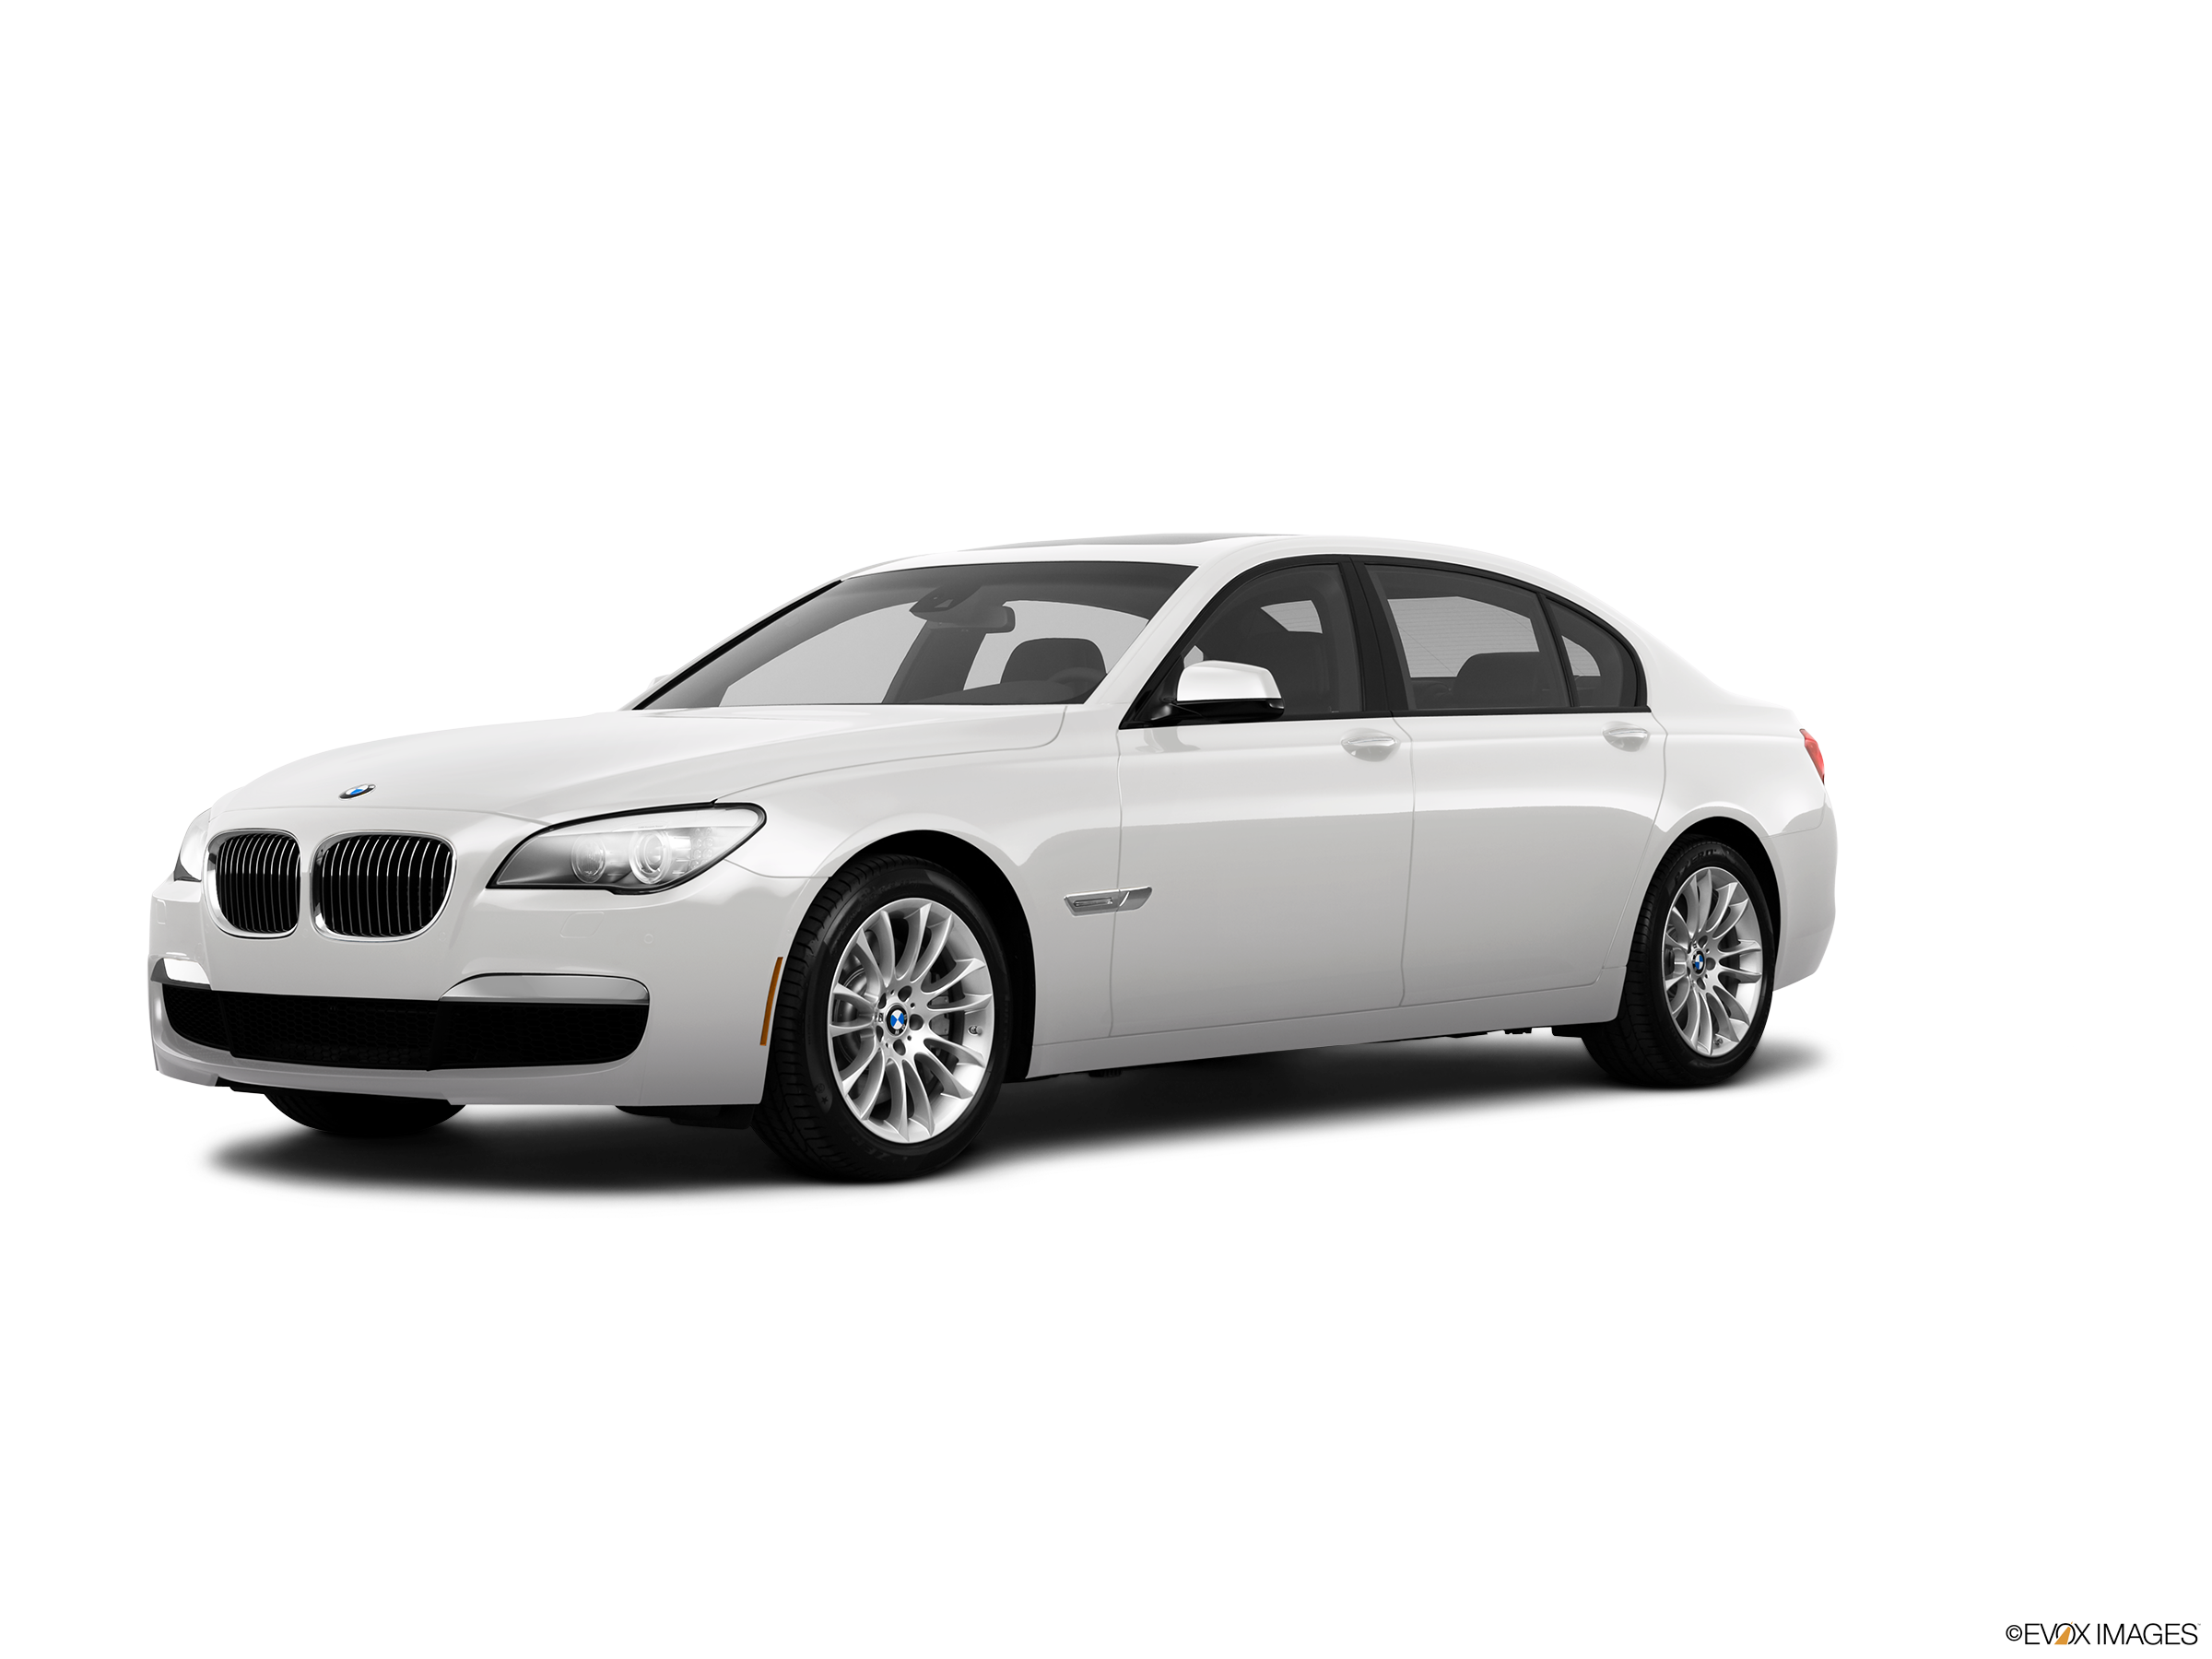 2010 Bmw 7 Series Values Cars For Sale Kelley Blue Book